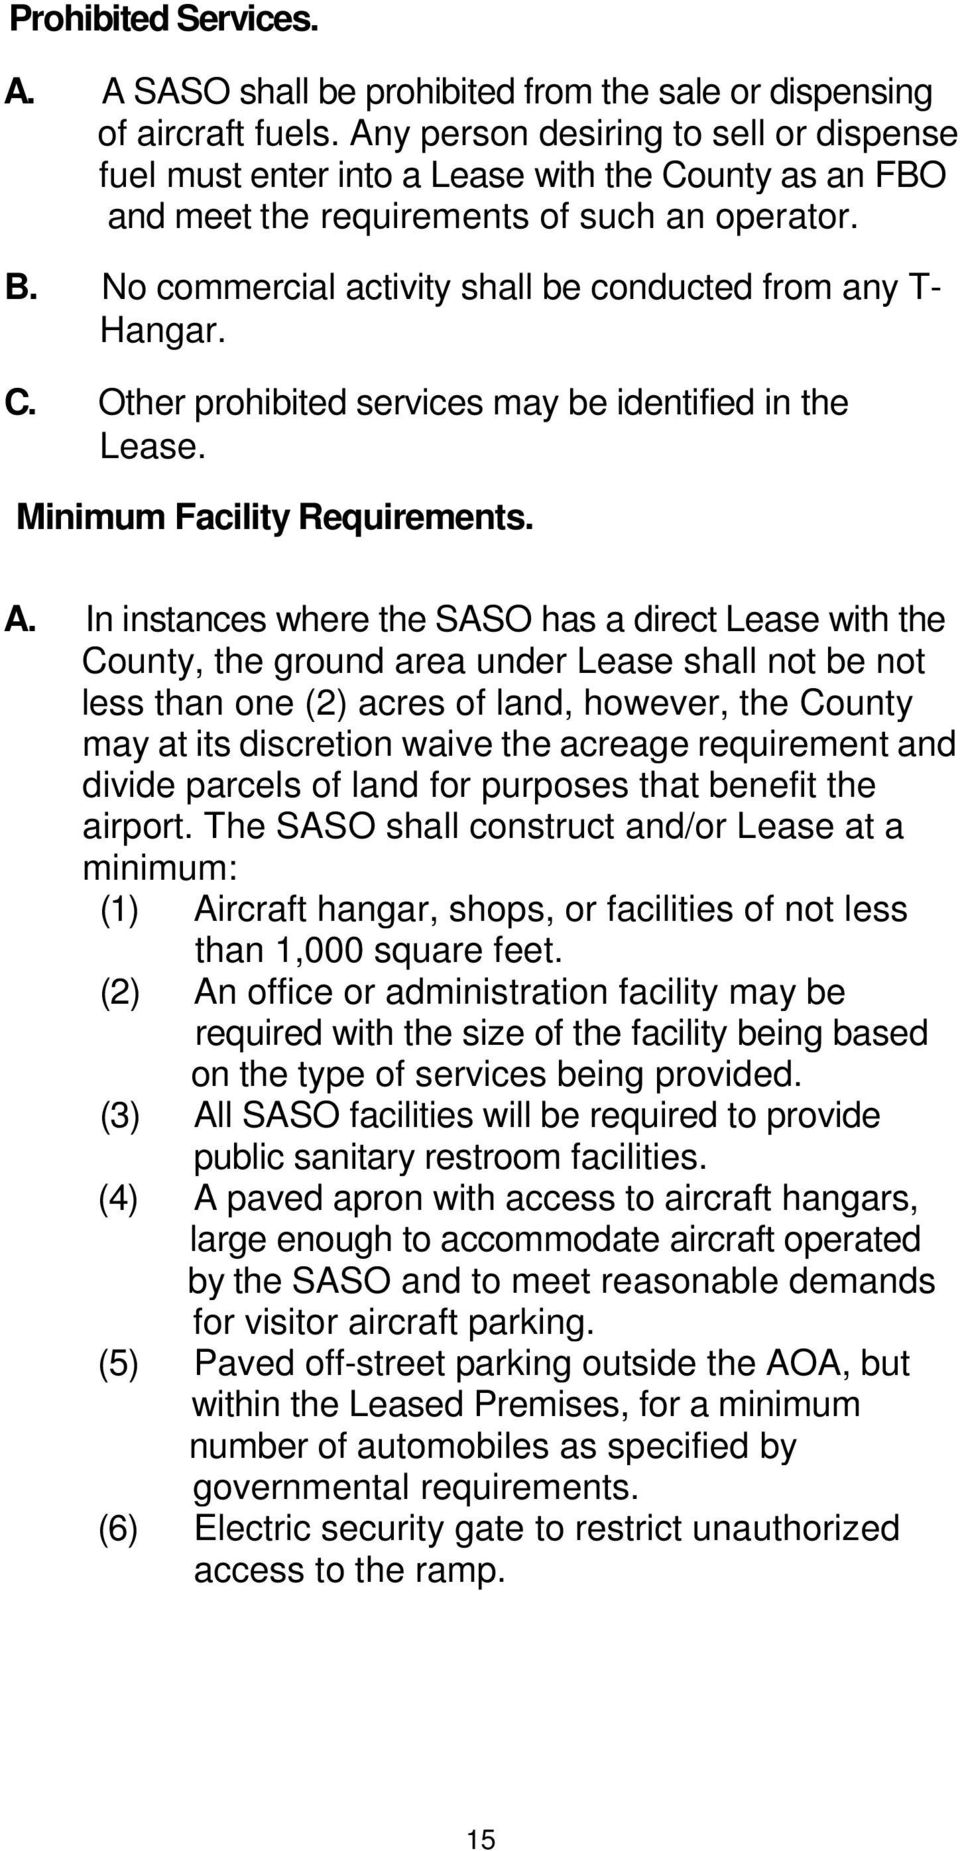 No commercial activity shall be conducted from any T- Hangar. C. Other prohibited services may be identified in the Lease. Minimum Facility Requirements. A.